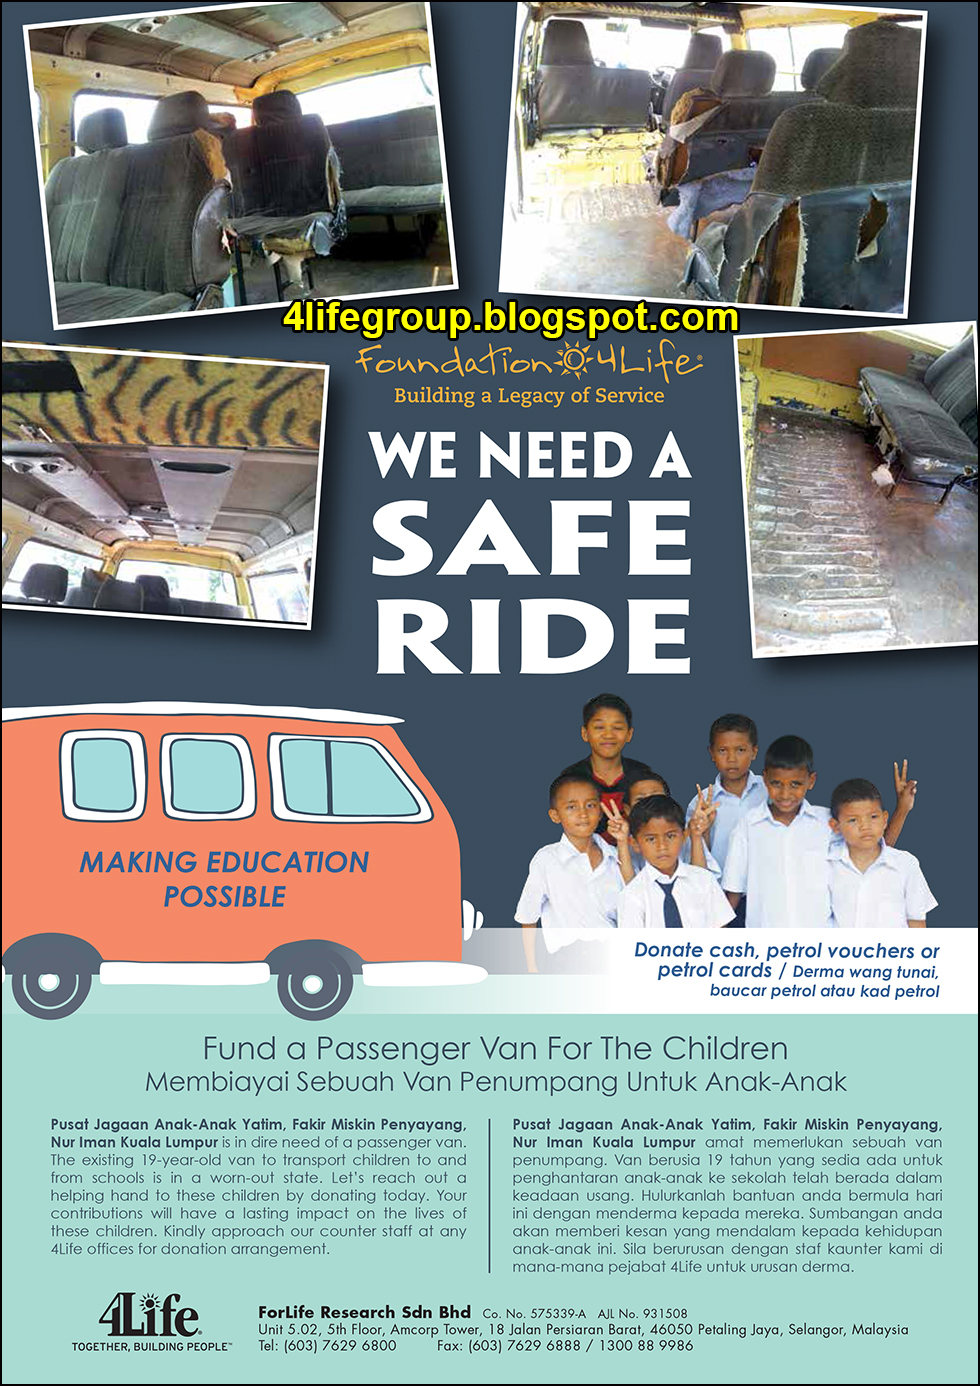 foto Foundation 4Life – We Need A Safe Ride